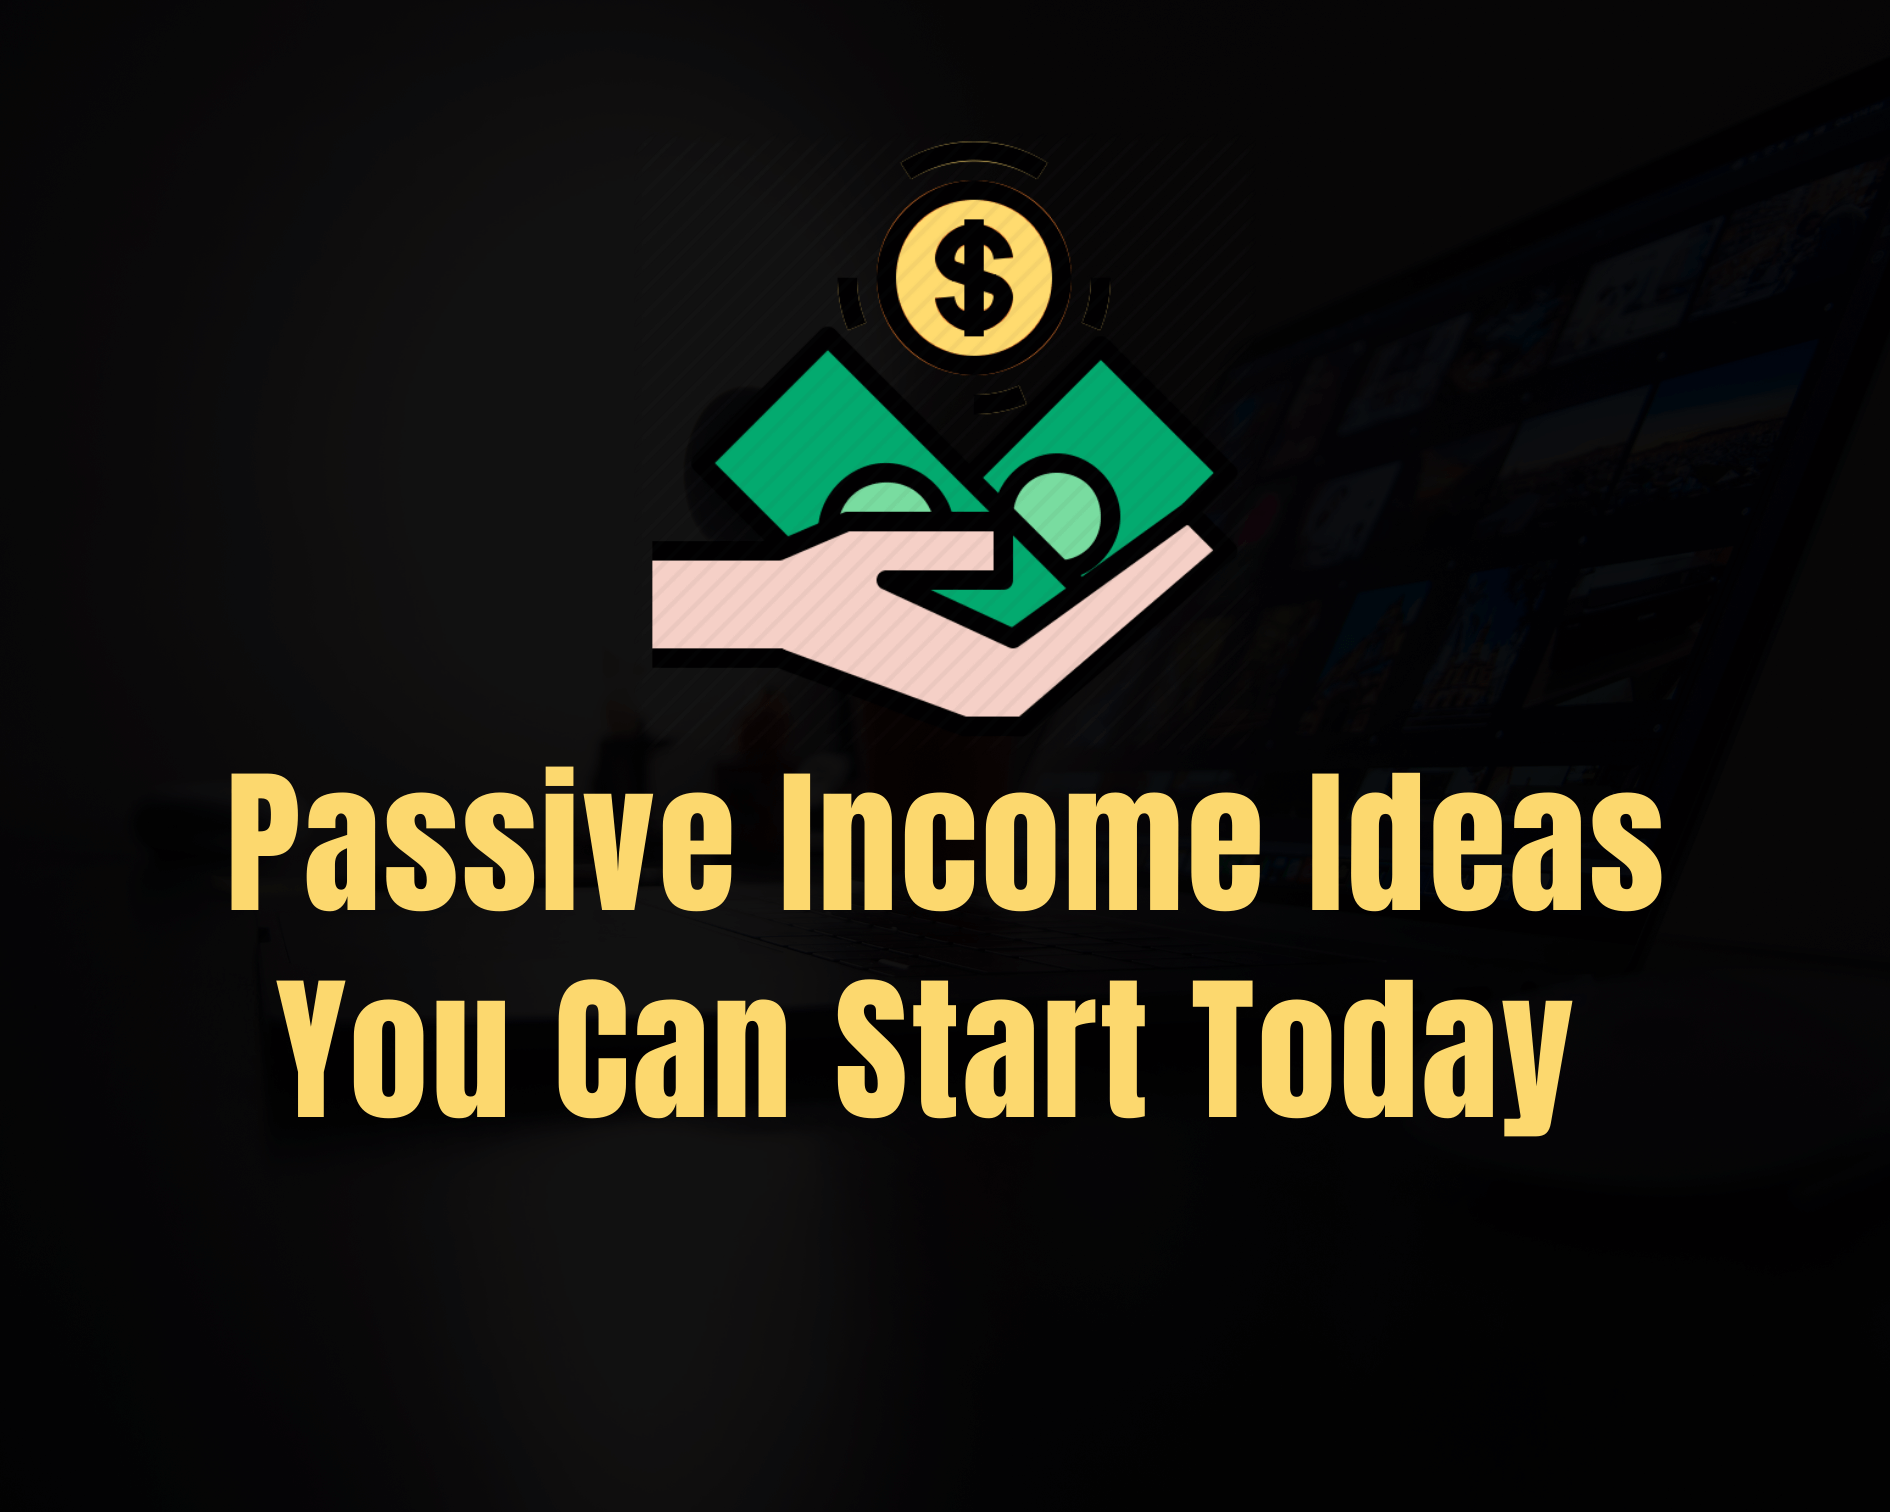 17 Passive Income Ideas You Can Start in 2021